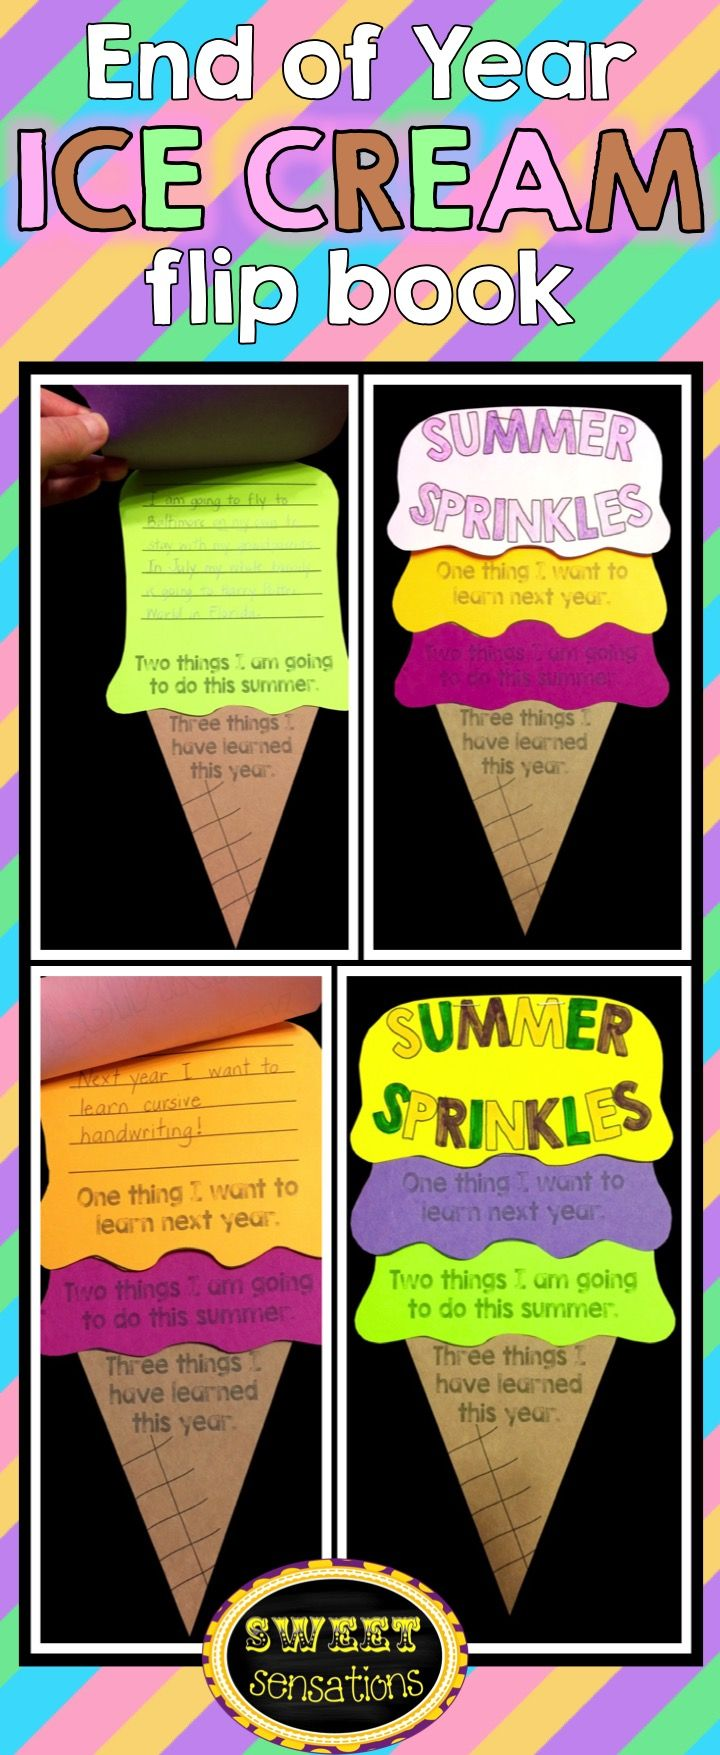 End of year craft for K-5 - ice-cream flip book.  Students write 3 things they have learned, 2 things they want to do in the summer and 1 thing they hope to learn in first grade.  Makes a cute bulletin board and a sweet keepsake to take home in the summer!